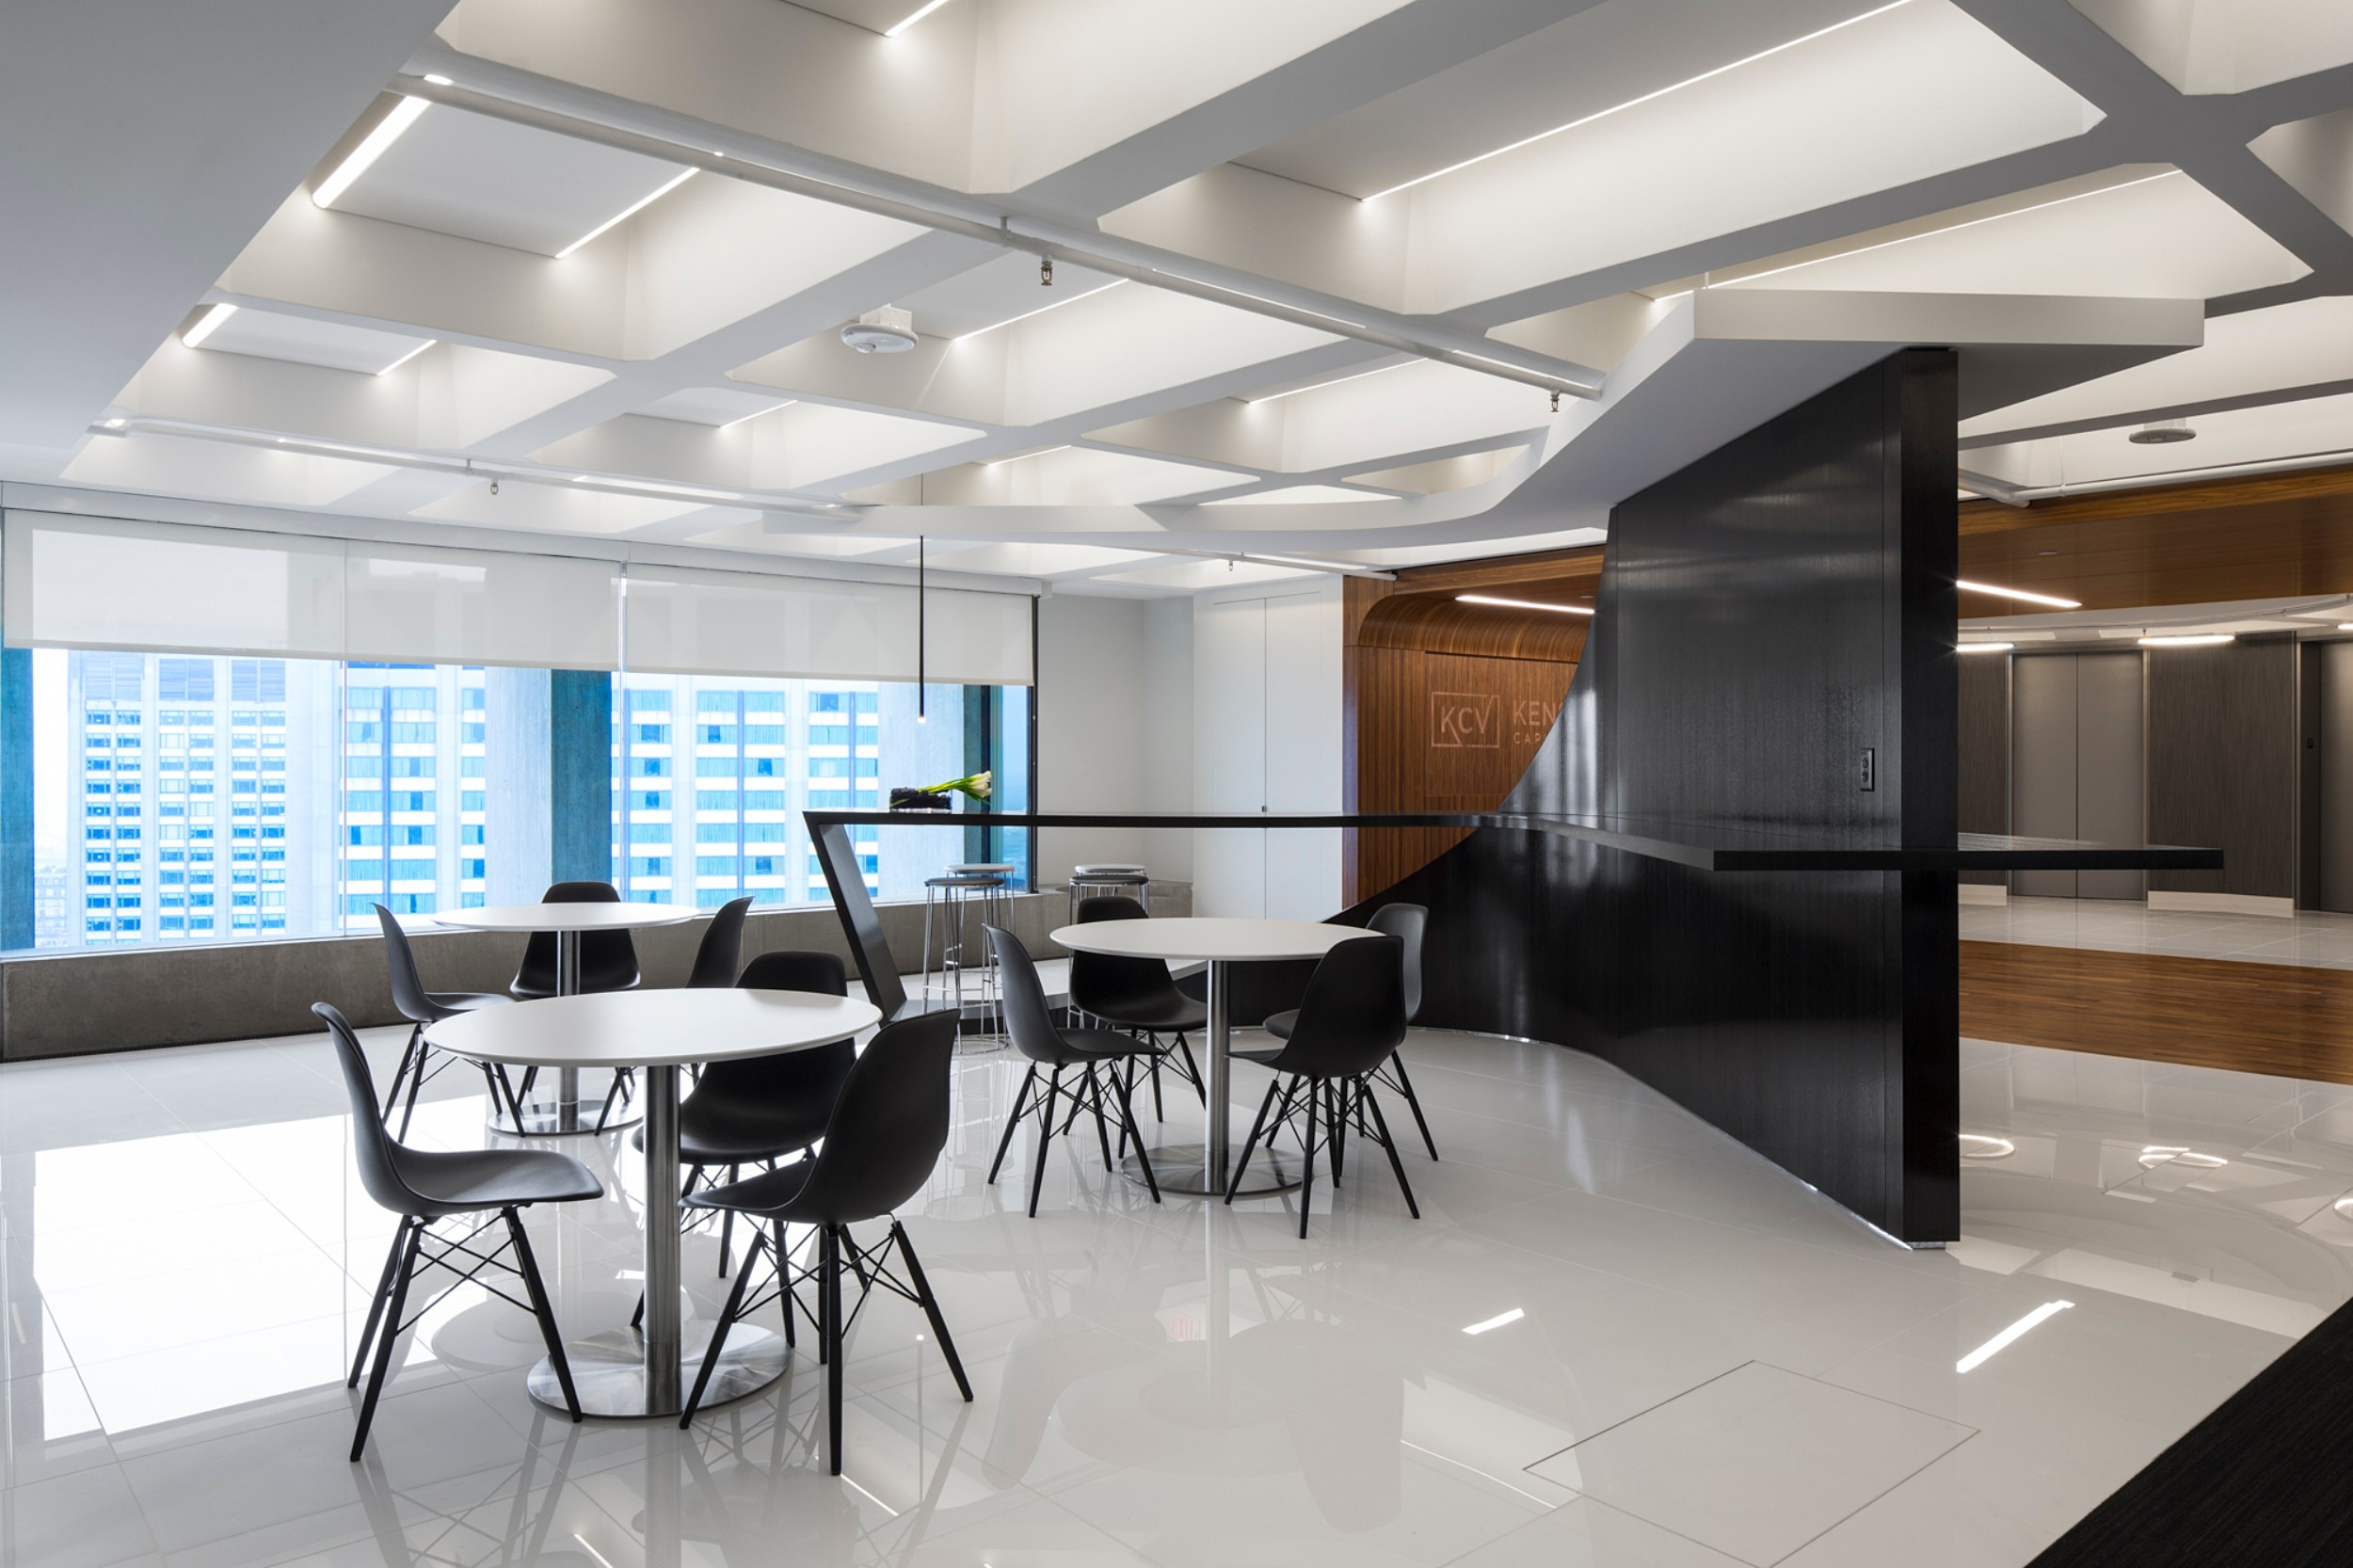 Kensington_Capital_Ventures_Holdings_Corderman_Construction_Office_Finance_Boston_Seating_Area_Cafe.jpg